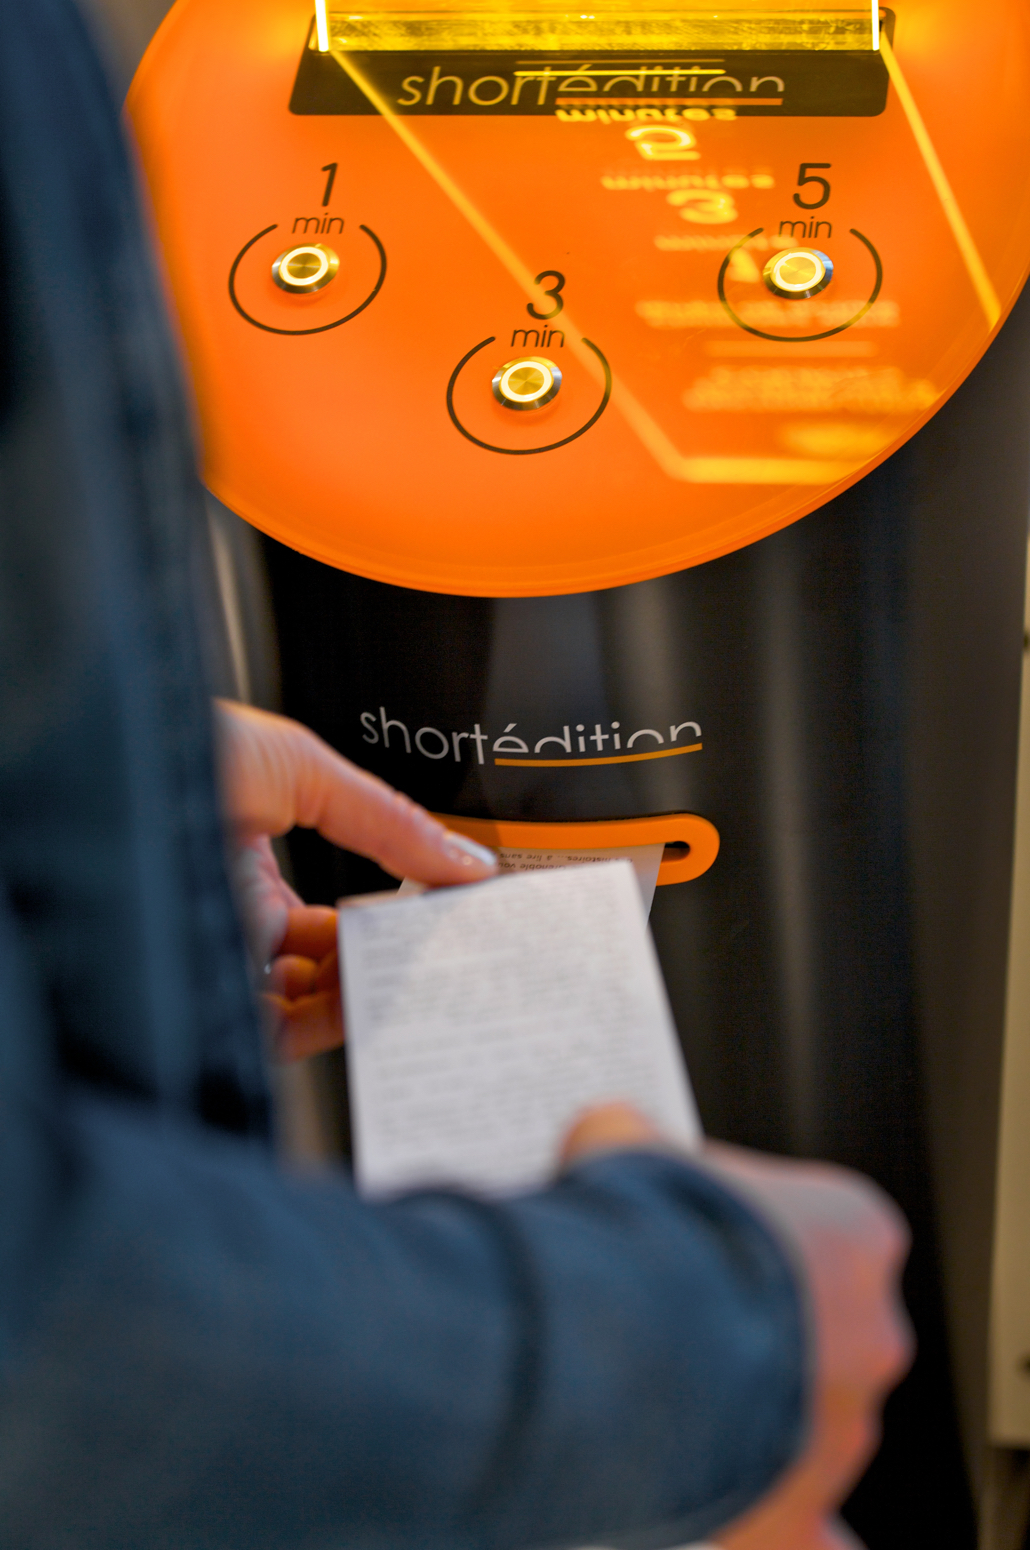 Short Edition: A Short Story Vending Machine that Prints Free Stories On-Demand